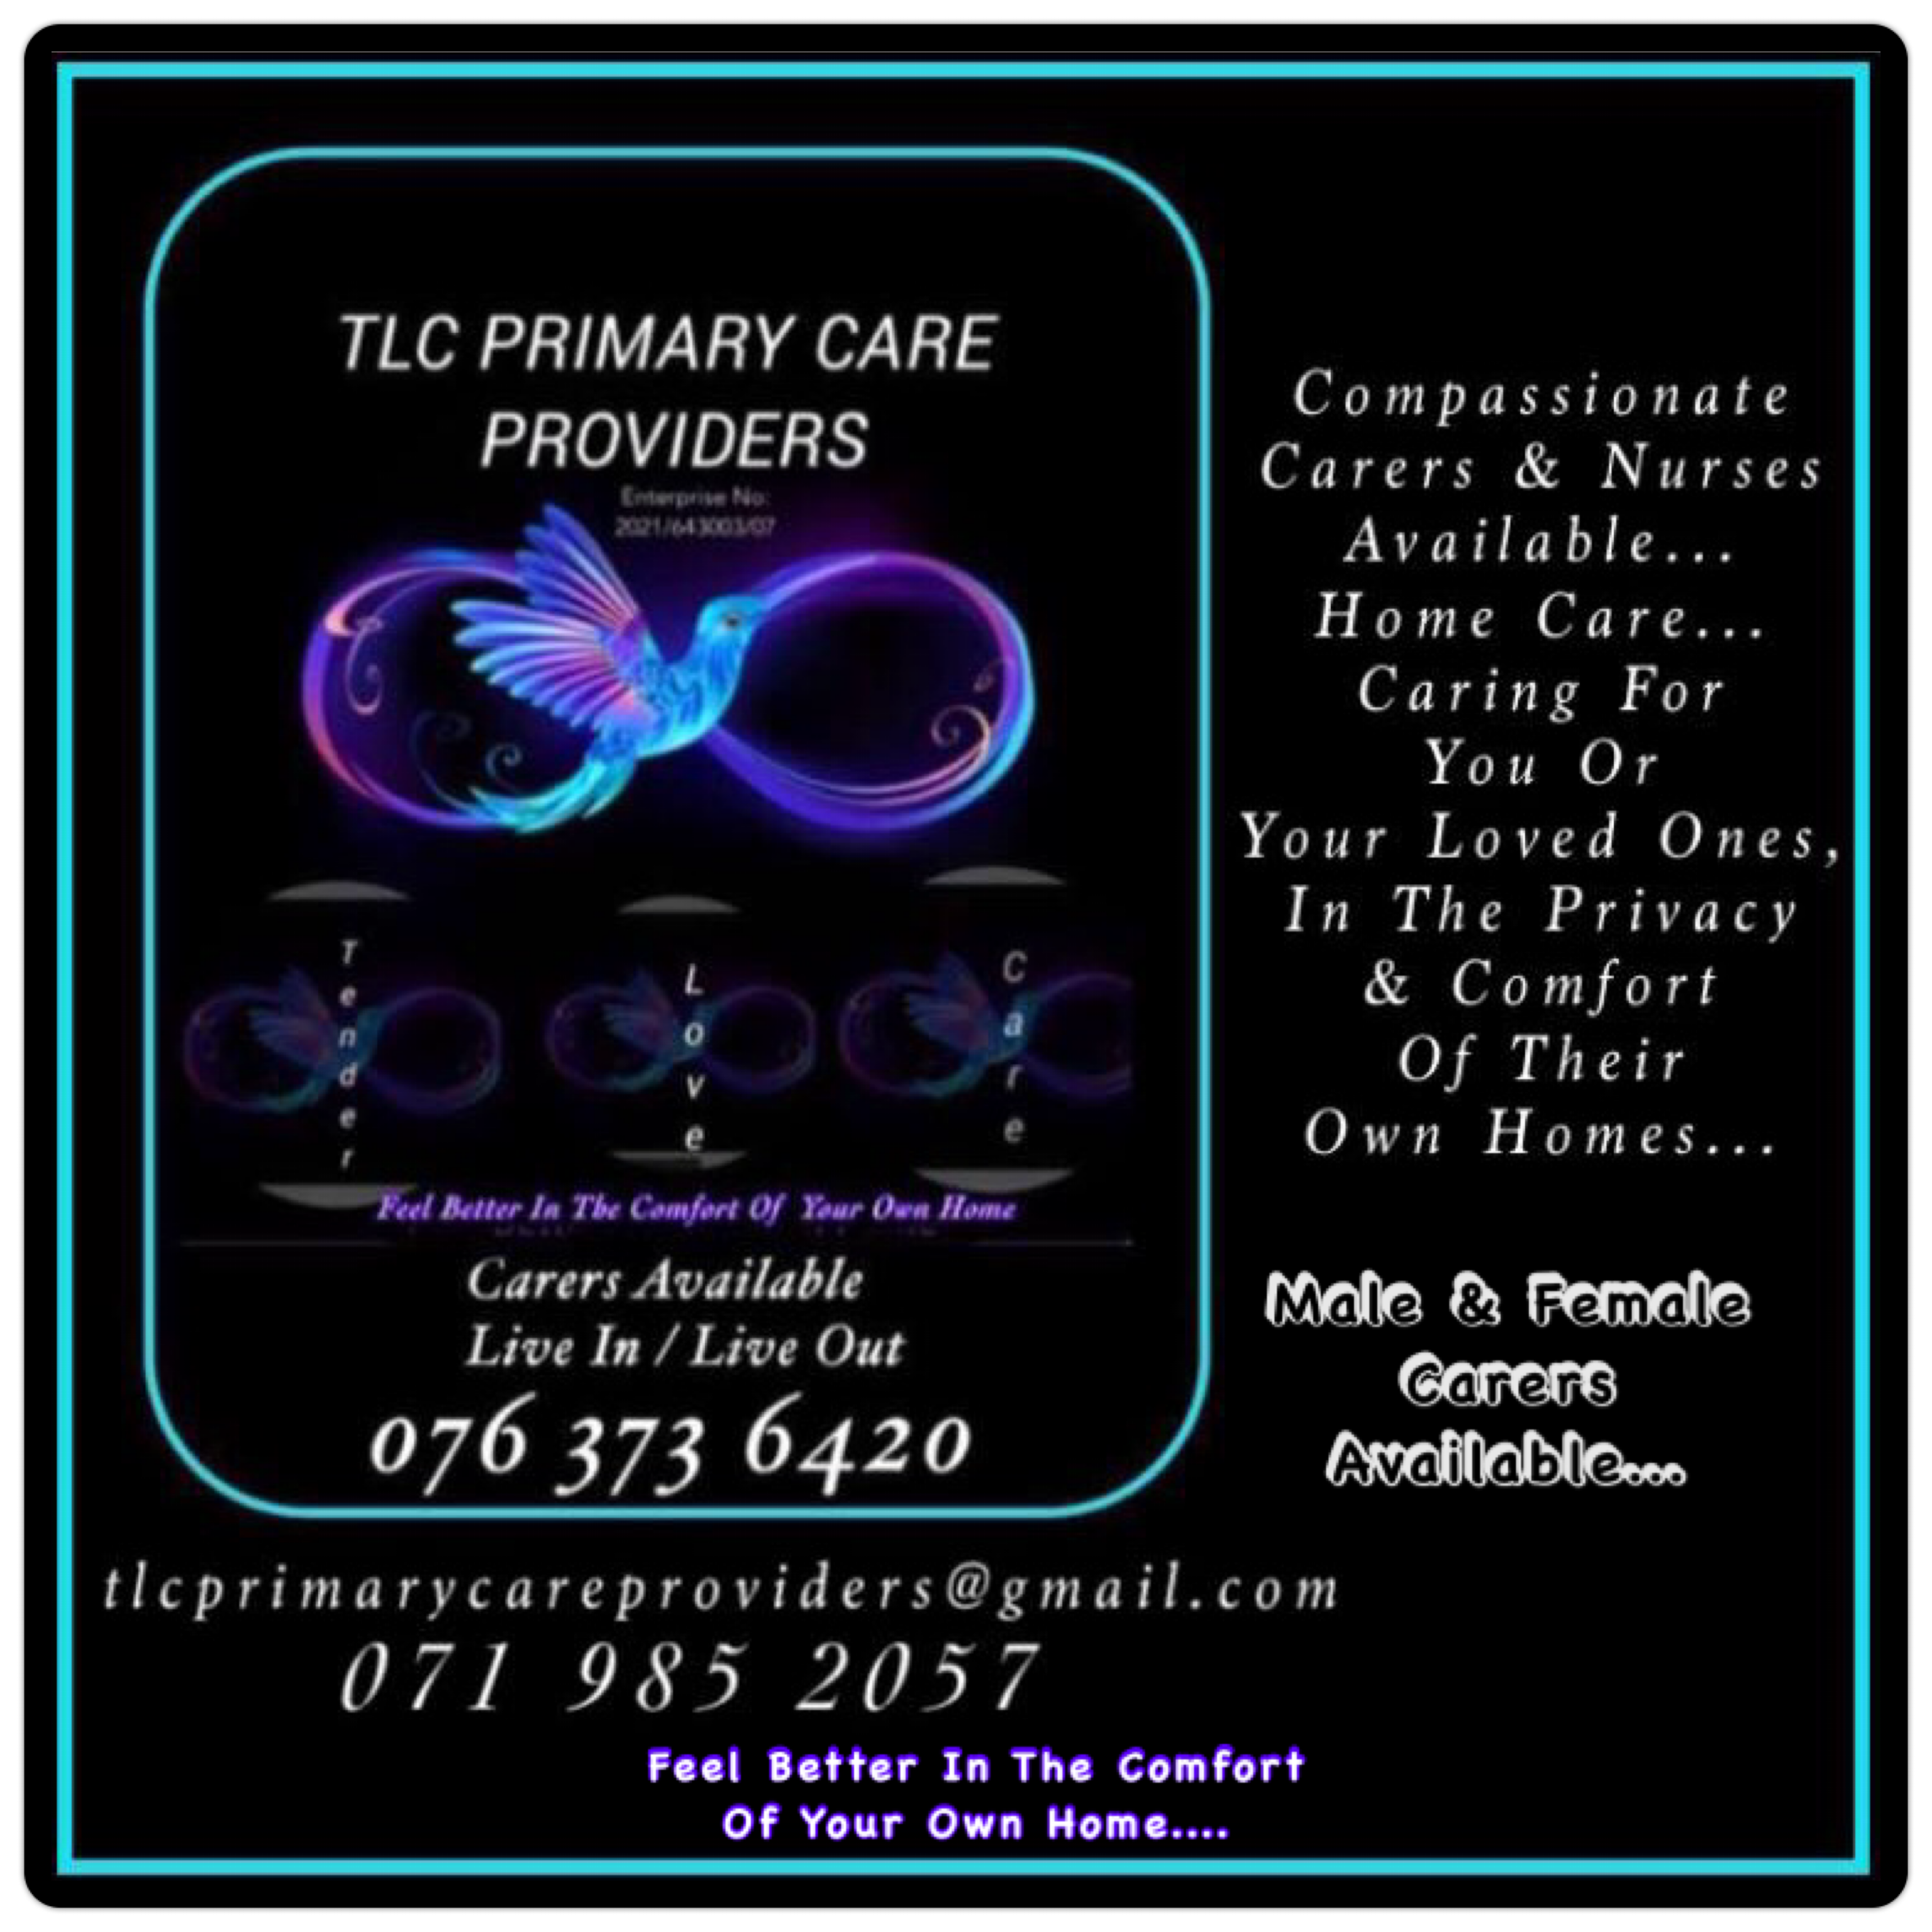 Business Listing for TLC PRIMARY CARE PROVIDERS